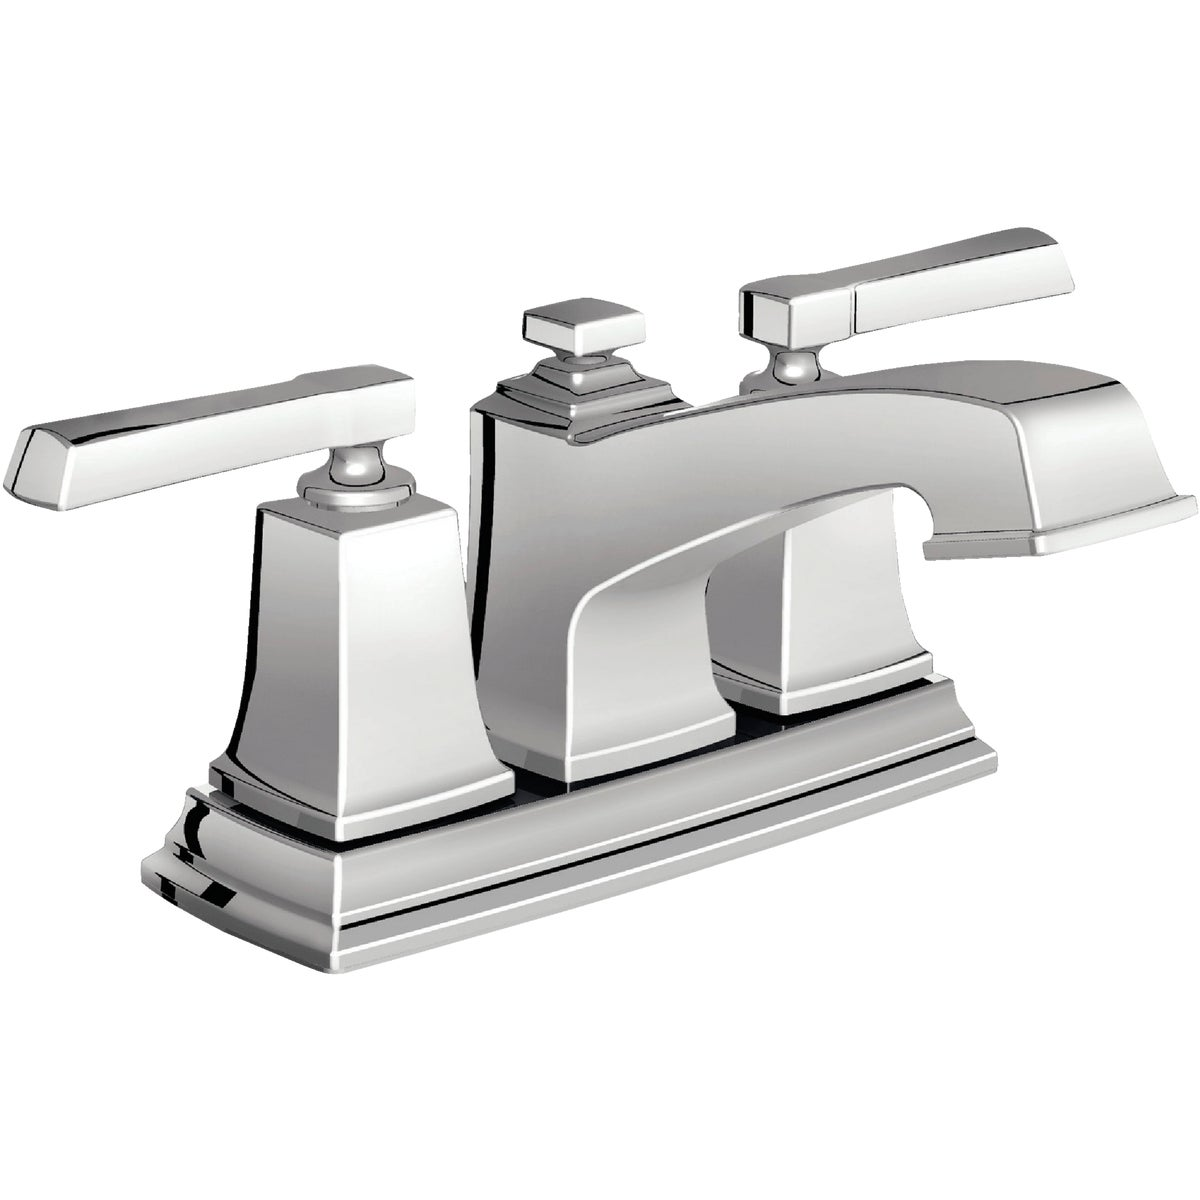 2H CHROME LAV FAUCET - 84800 by Moen Inc